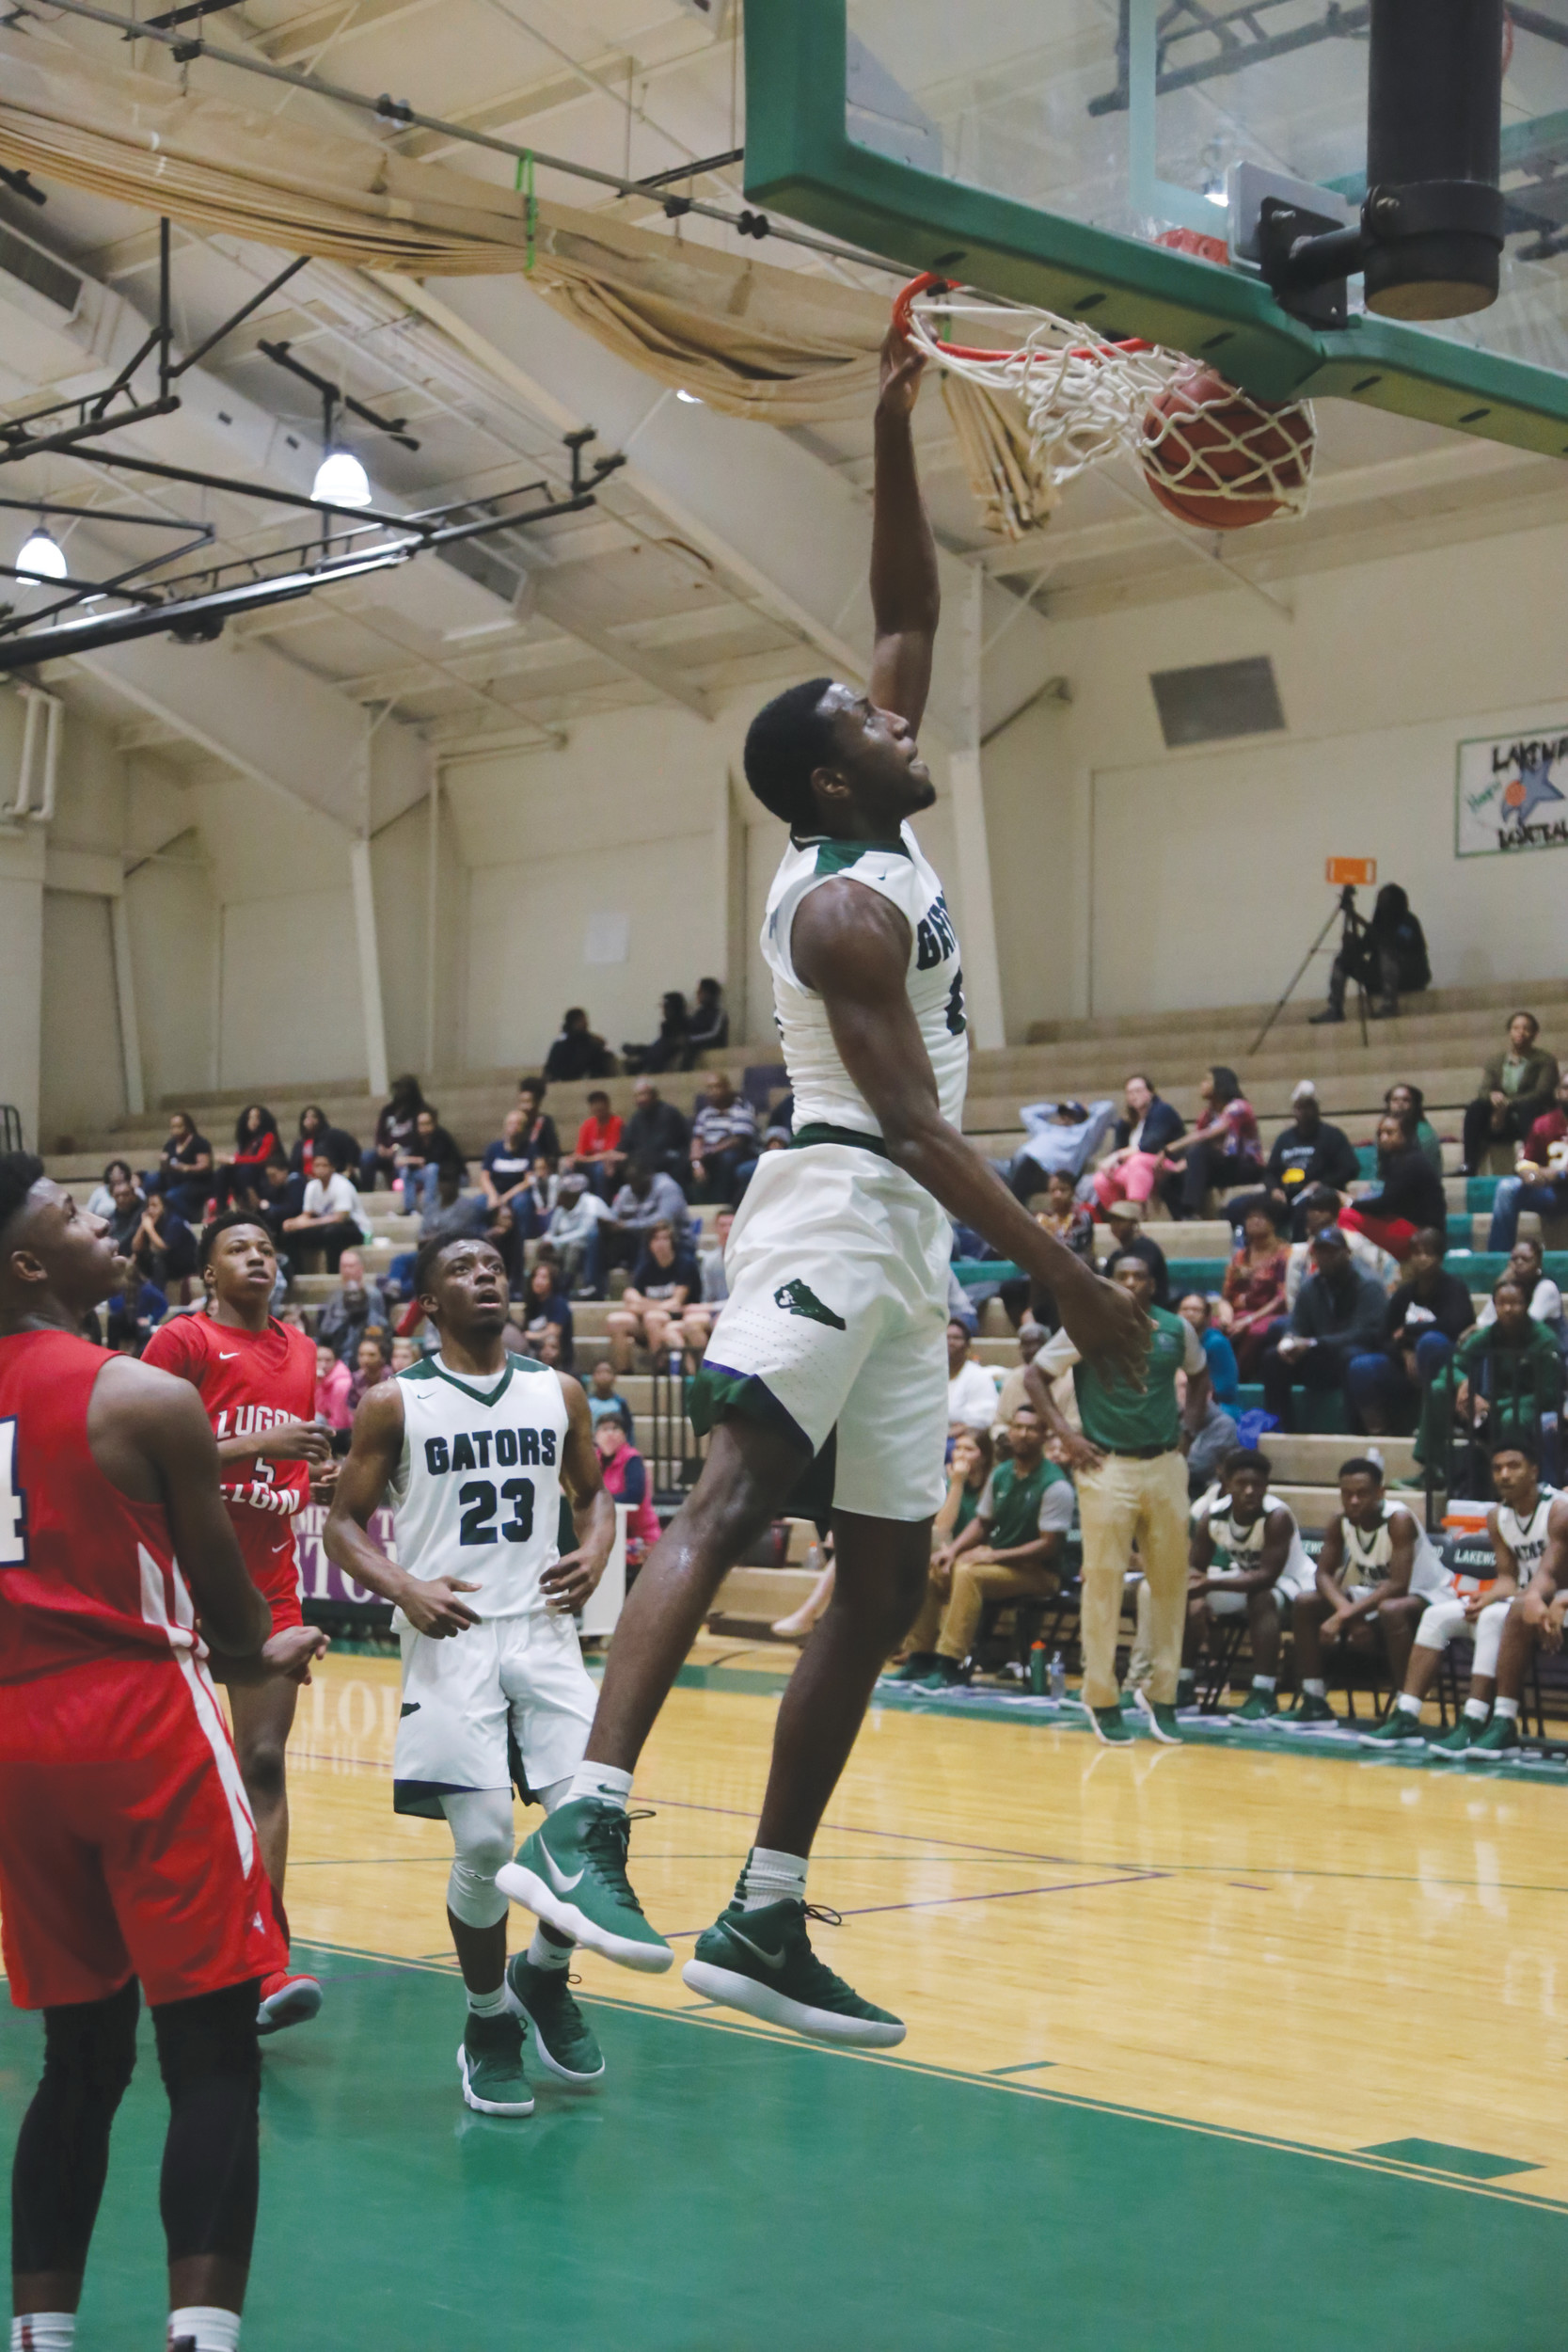 Lakewood's Akeem Lawson throws down a dunk during the third period of the Gators 66-49 Region VI-4A victory over Lugoff-Elgin on Friday at The Swamp. Lawson finished with a double-double, including 24 points and 12 rebounds.